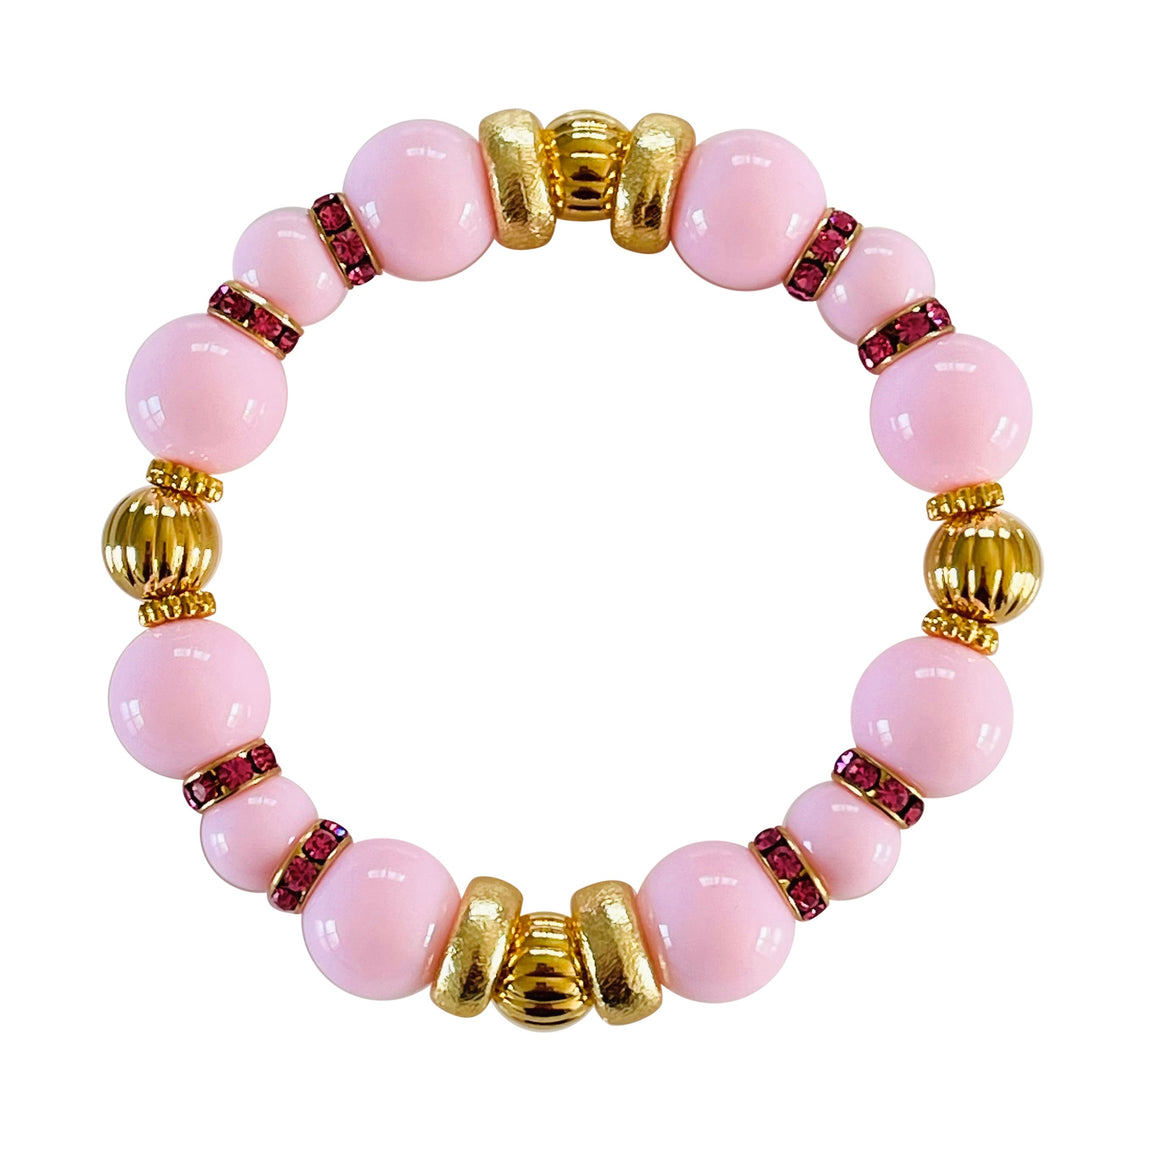 SHINY BANGLE IN LIGHT PINK